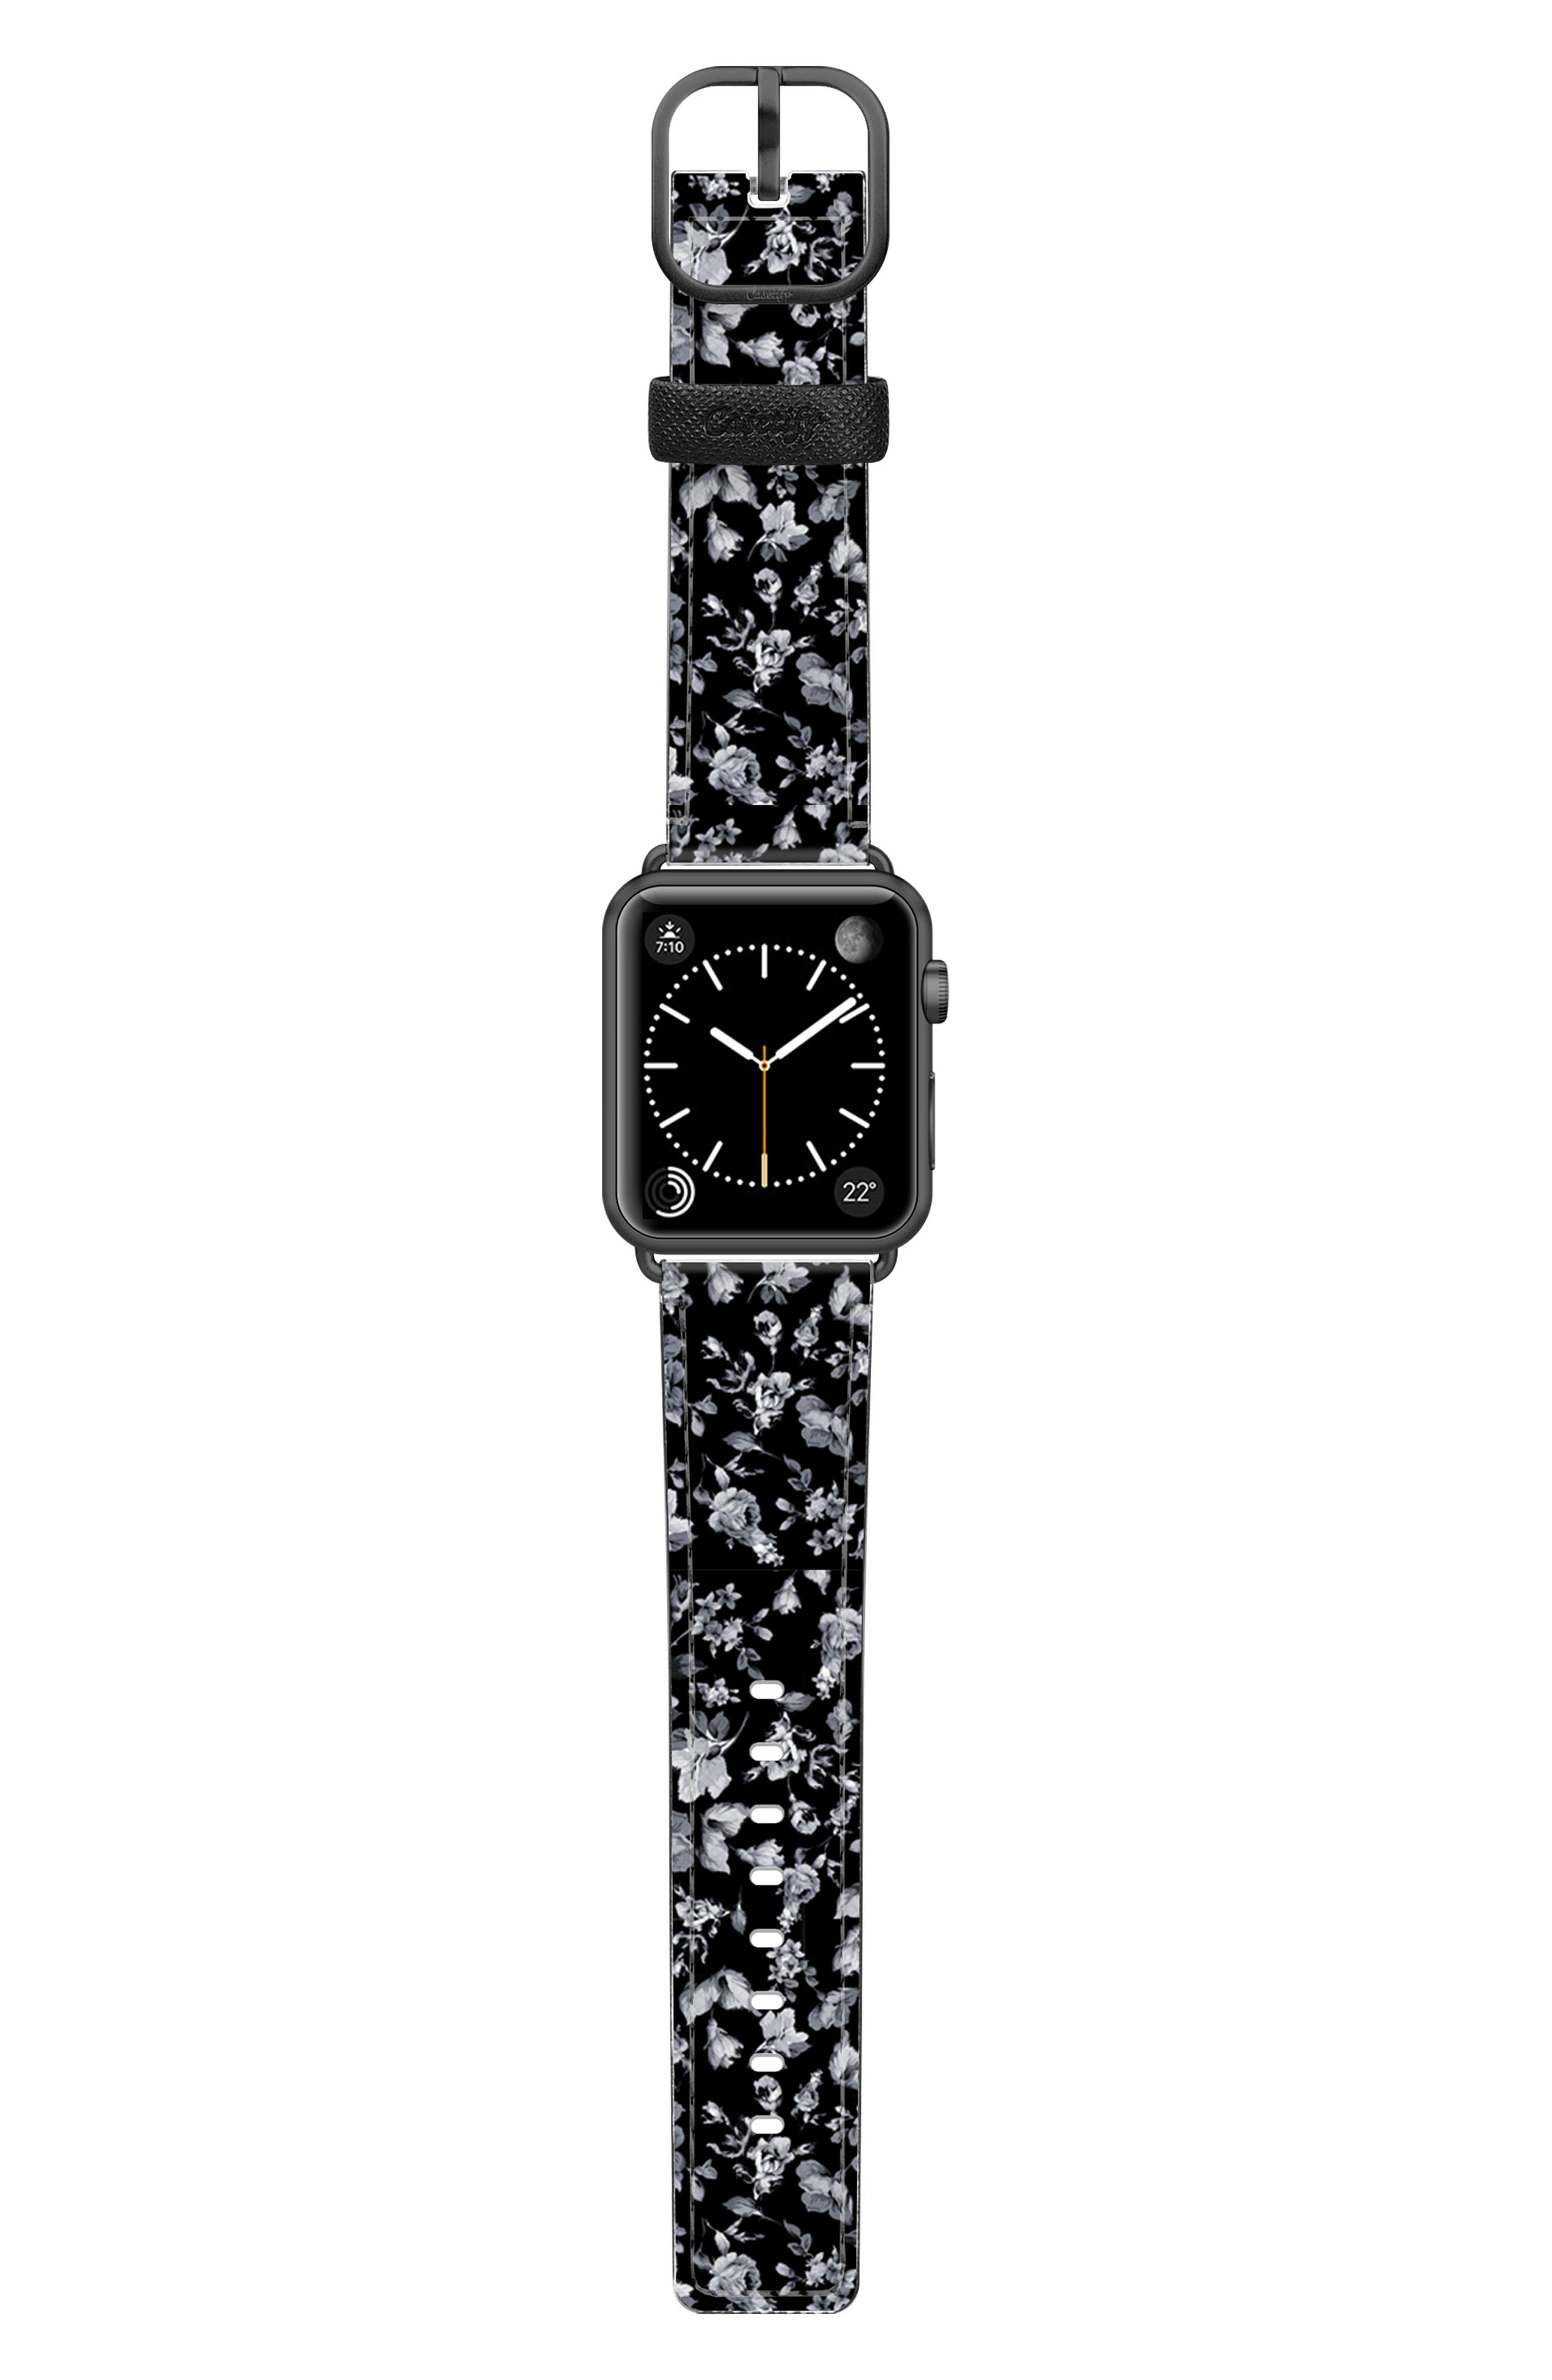 VINTAGE FLOWERS SAFFIANO FAUX LEATHER APPLE WATCH STRAP